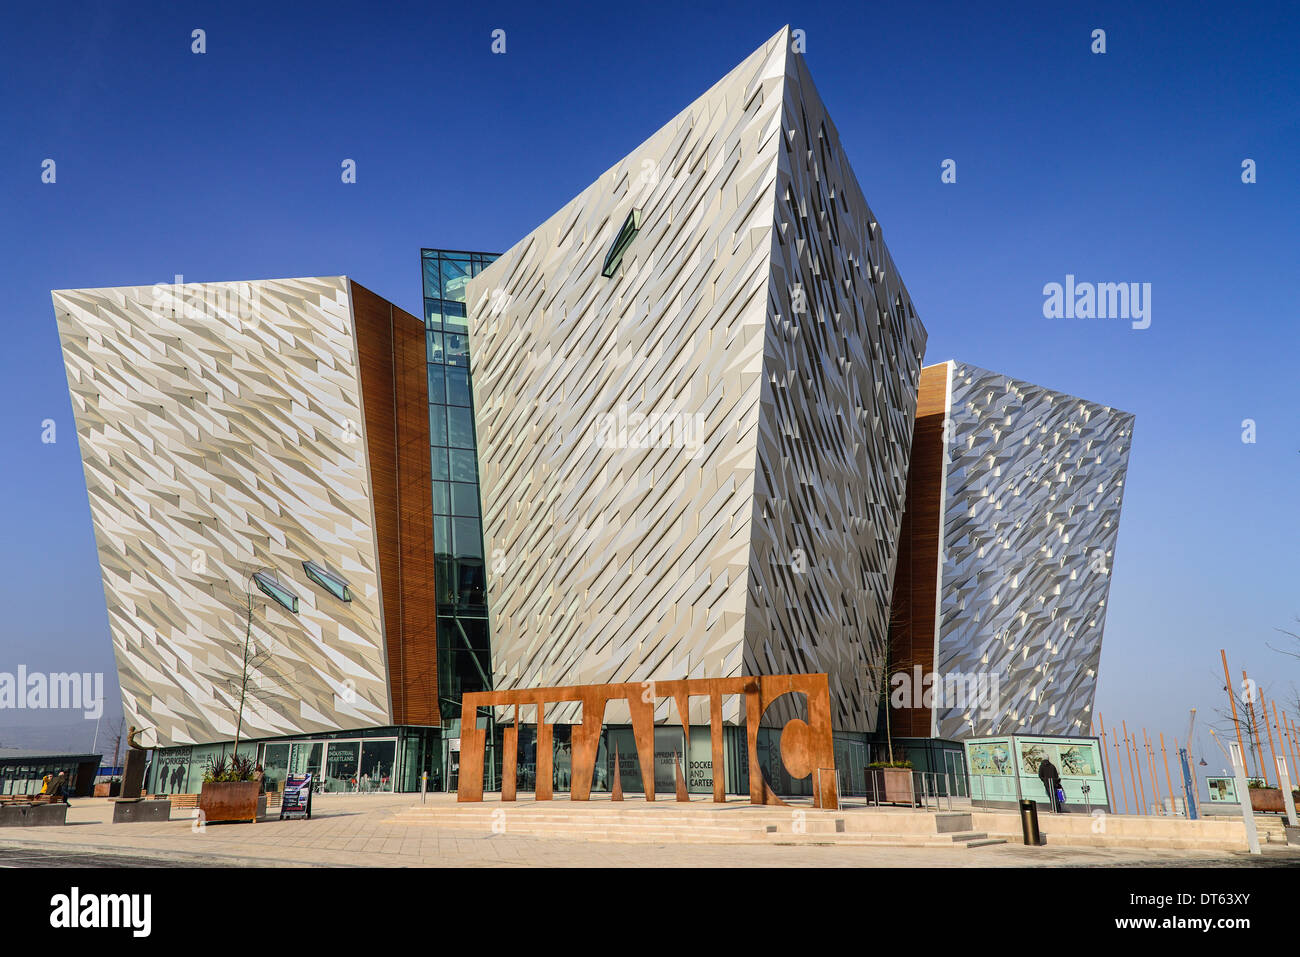 Ireland, Belfast, Titanic Quarter, Titanic Belfast Visitor Experience, General view of building with Titanic sign Stock Photo